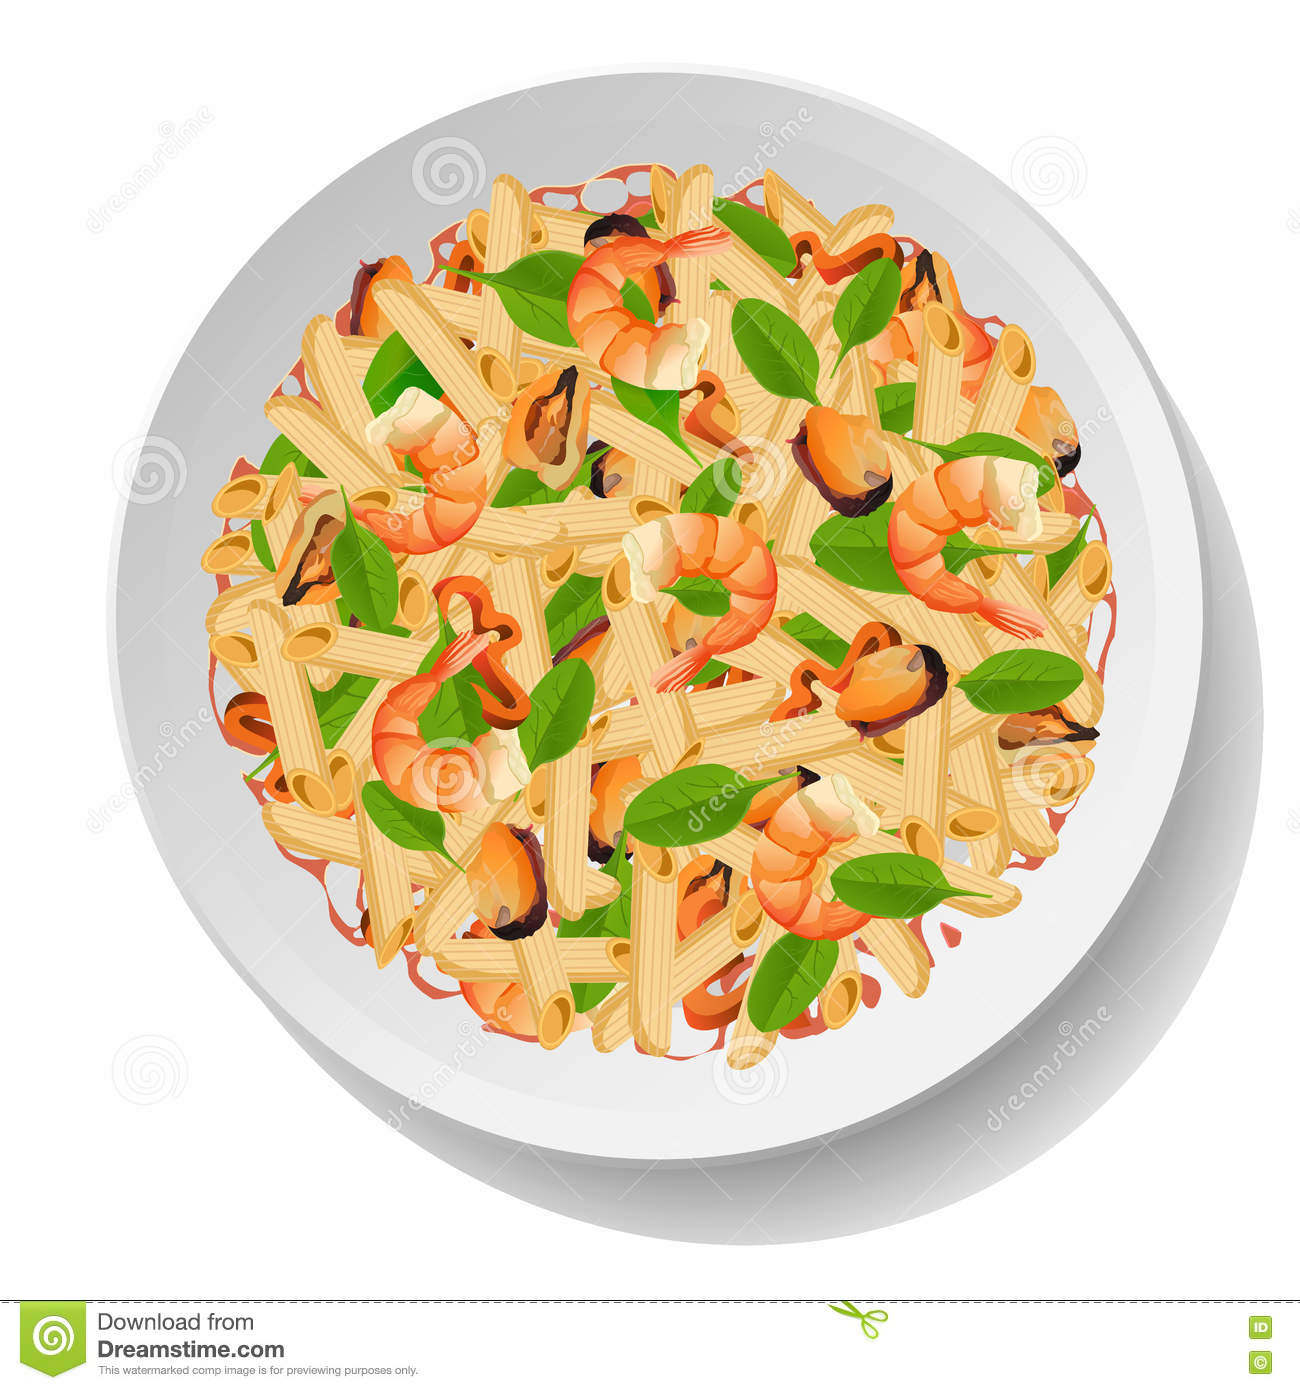 pasta macaroni penne salad with seafood shrimps or king spaghetti dinner clip art church spaghetti dinner clip art black and white